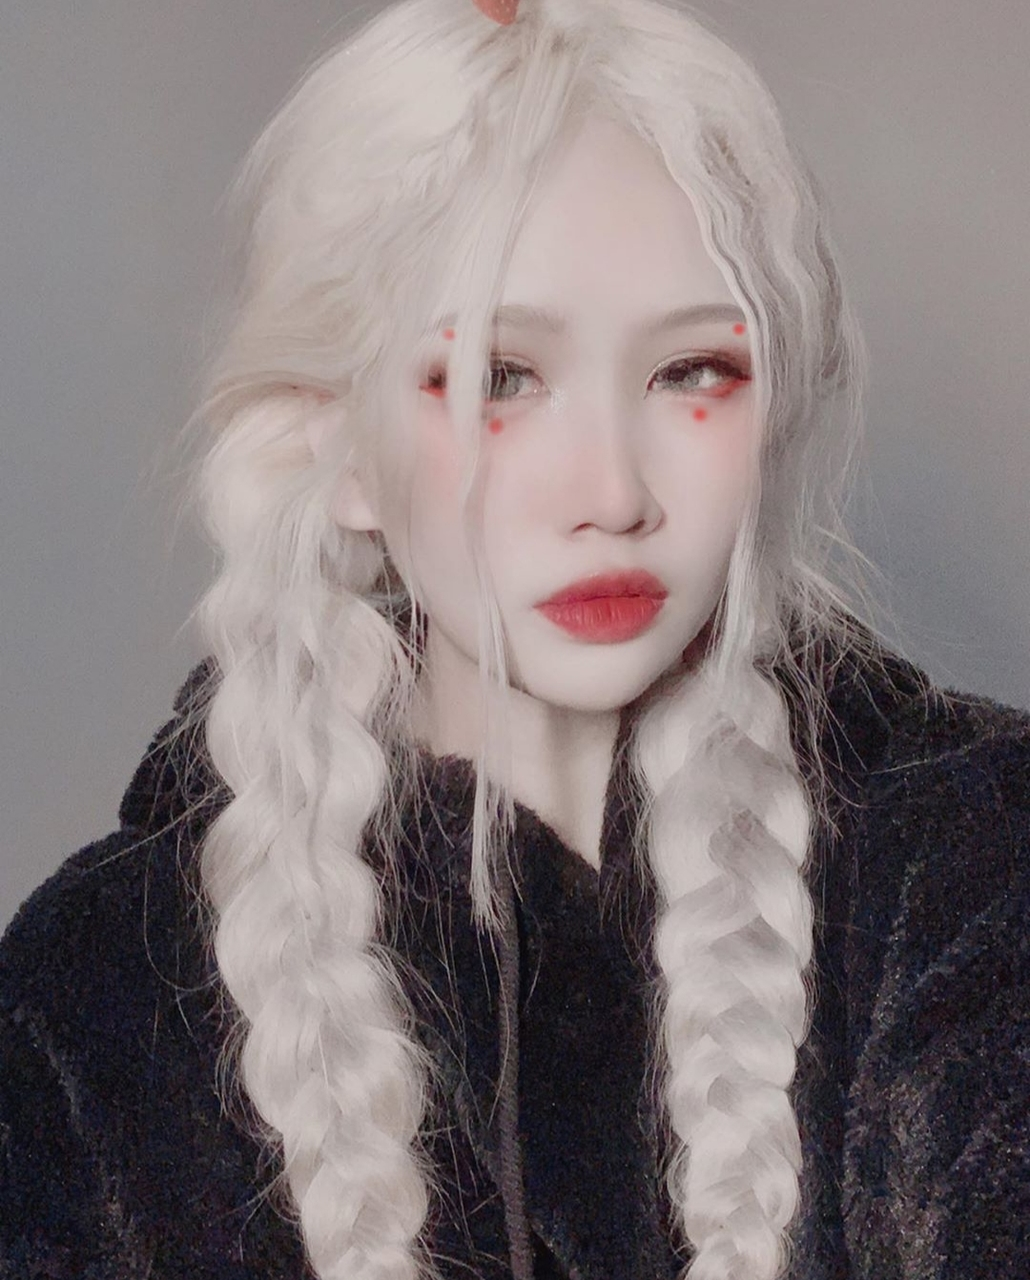 braided hair, doll, and instagram image